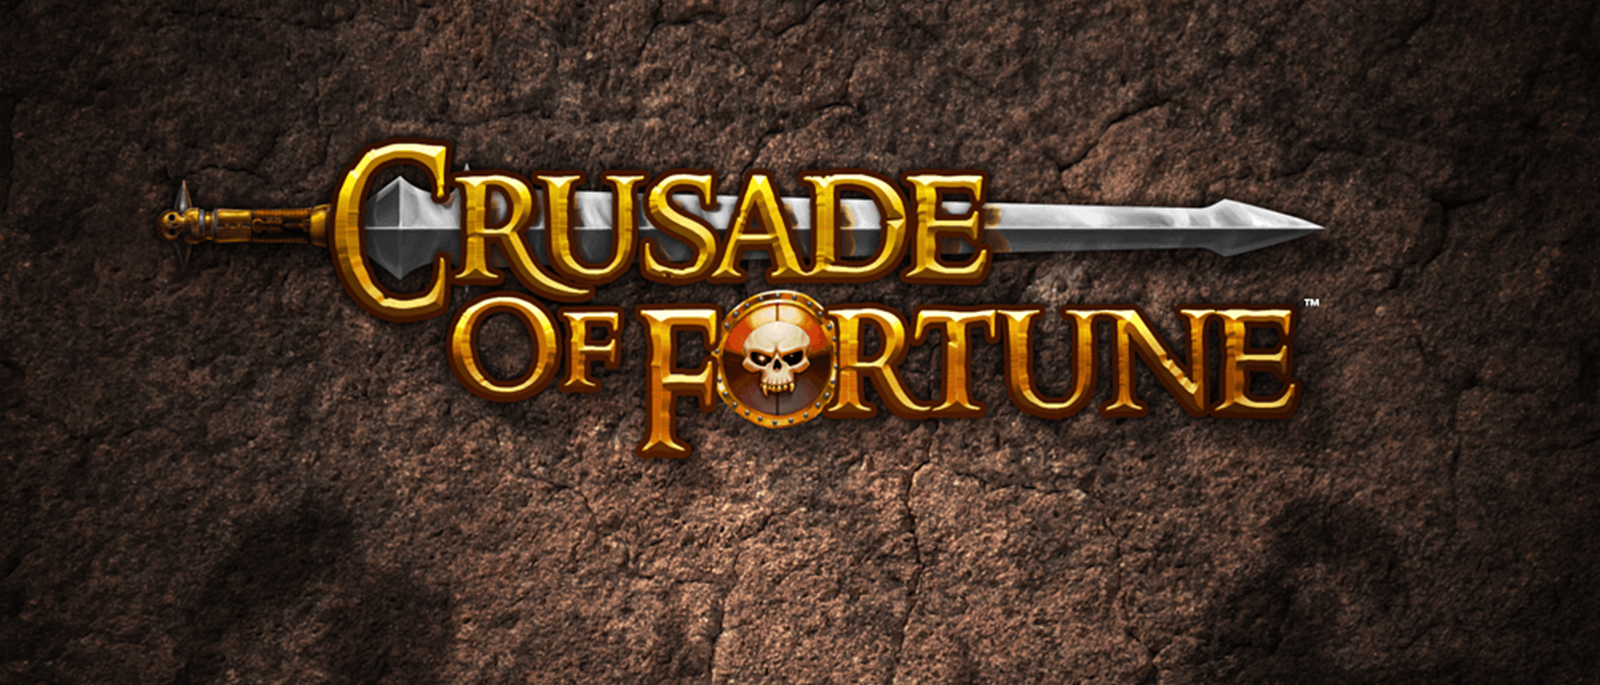 Crusade of fortune Slot Spiele